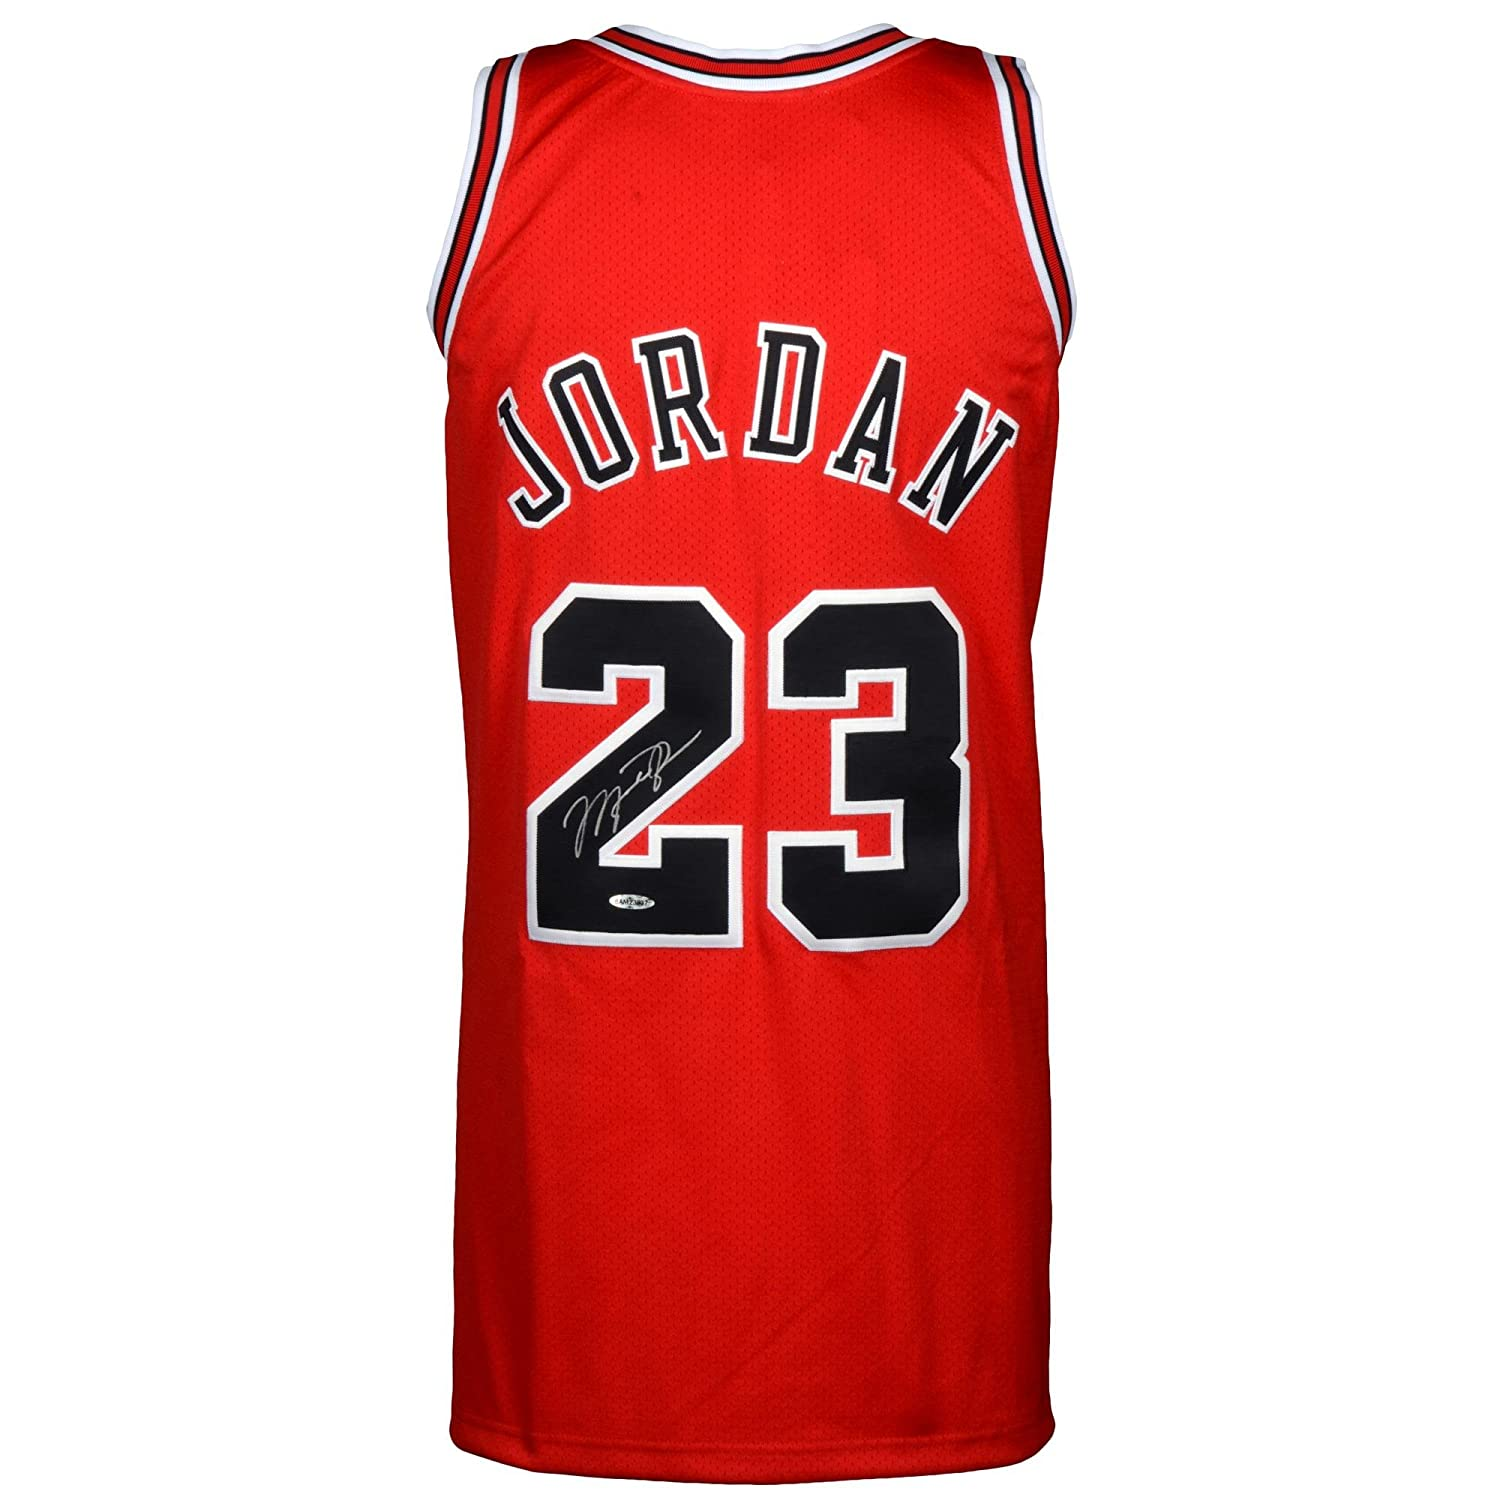 Michael Jordan Chicago Bulls Autographed 1997-98 Mitchell   Ness Red Jersey  - Upper Deck - Fanatics Authentic Certified at Amazon s Sports Collectibles  ... 361599c28c3